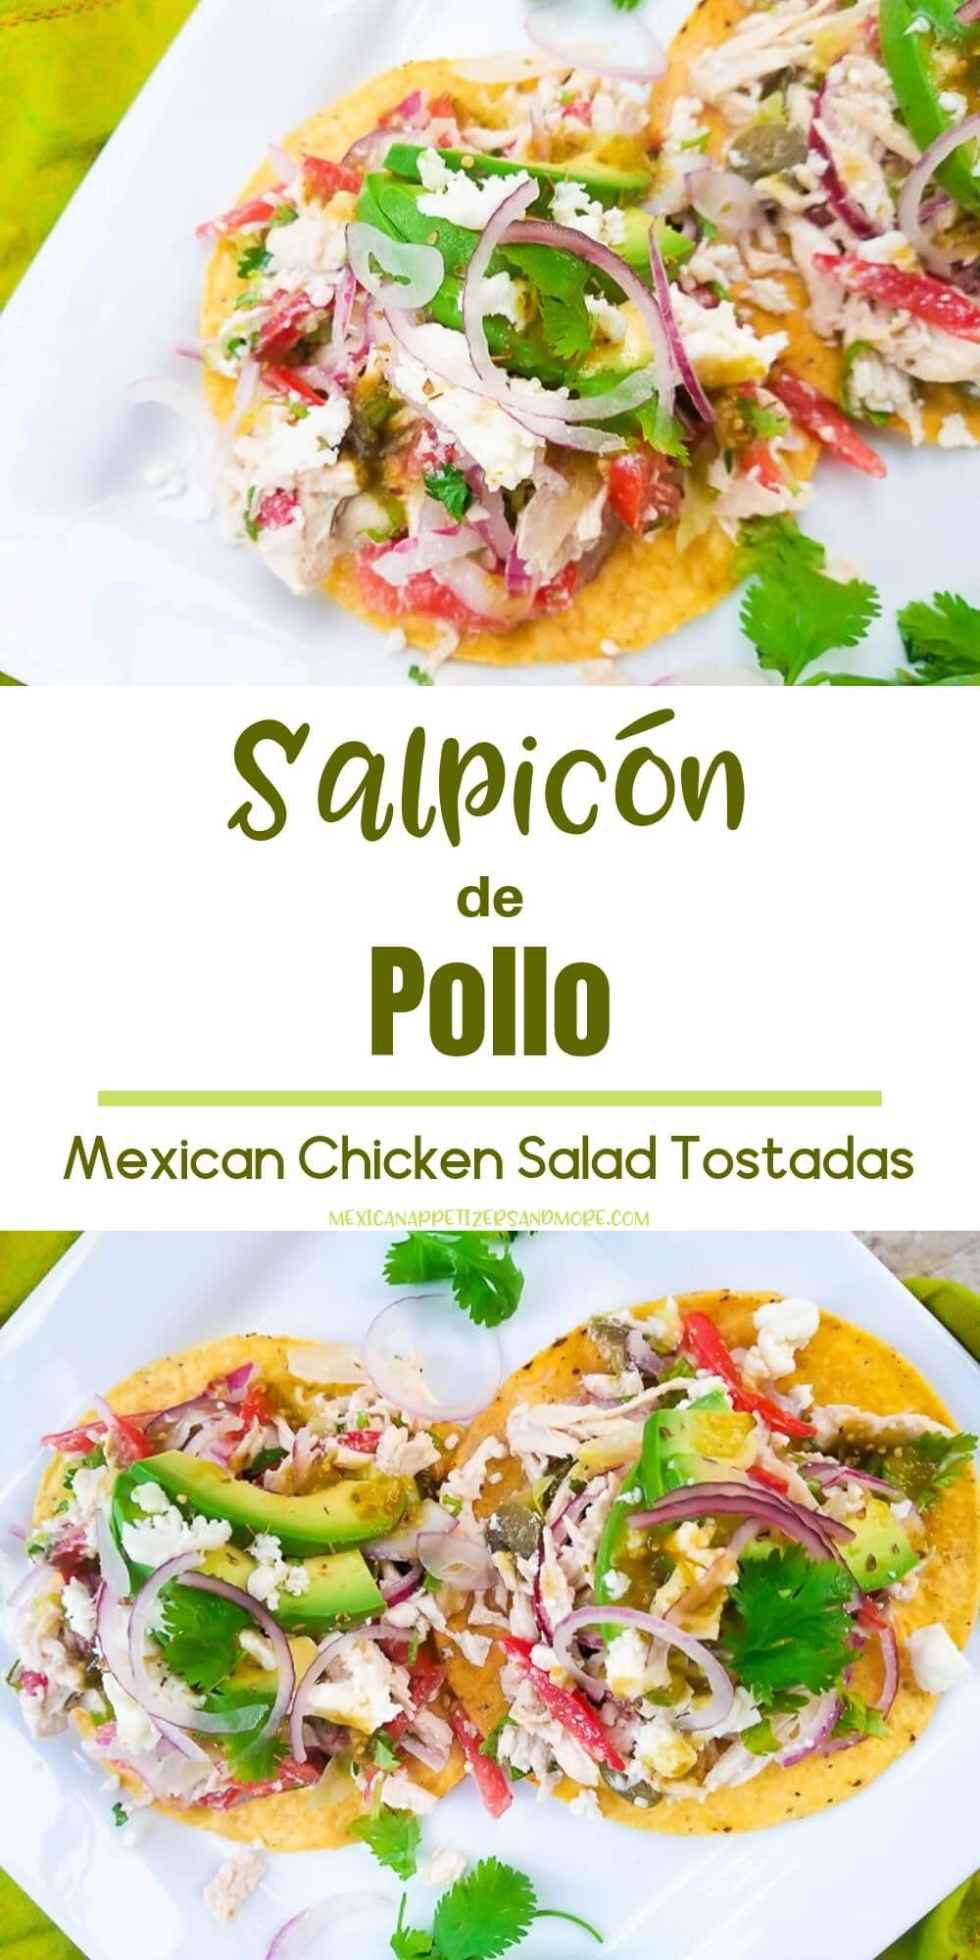 Salpicón de Pollo (Mexican Chicken Salad) is a delicious chicken salad dressed in a tasty lime vinaigrette.  This dish is perfect as an appetizer, snack or dinner and it is a great dish for entertaining.  You will love Salpicón! #salpicondepollo #salpicondepollomexicano #salpicondepollorecipe #salpiconrecipe #salpiconrecipemexicano #mexicanchickensaladtostadas #mexicanchickensalad #mexicanchickensaladrecipe #mexicanchickensaladrecipeeasy #tostadas #mexicanappetizersandmore